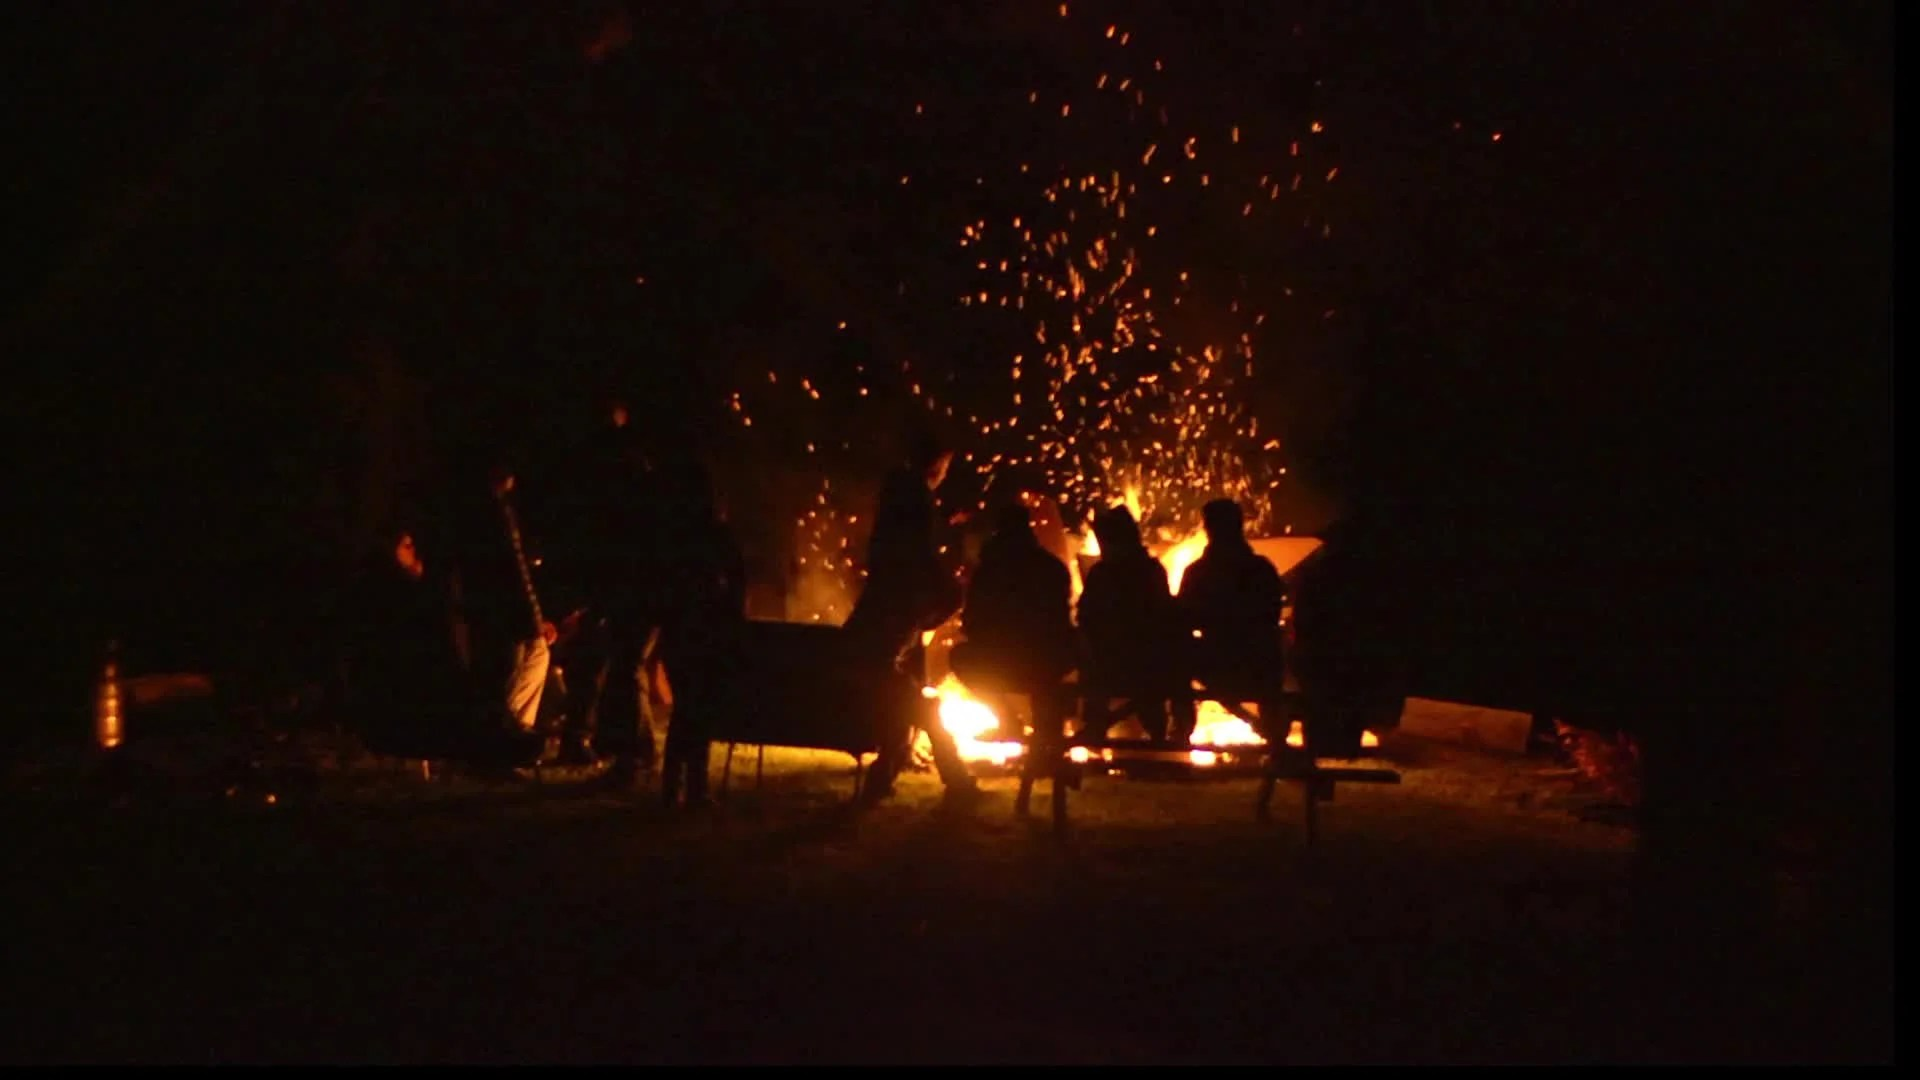 Audio Car Wallpaper Download Very Large Campfire With People Stock Video 12097070 Hd